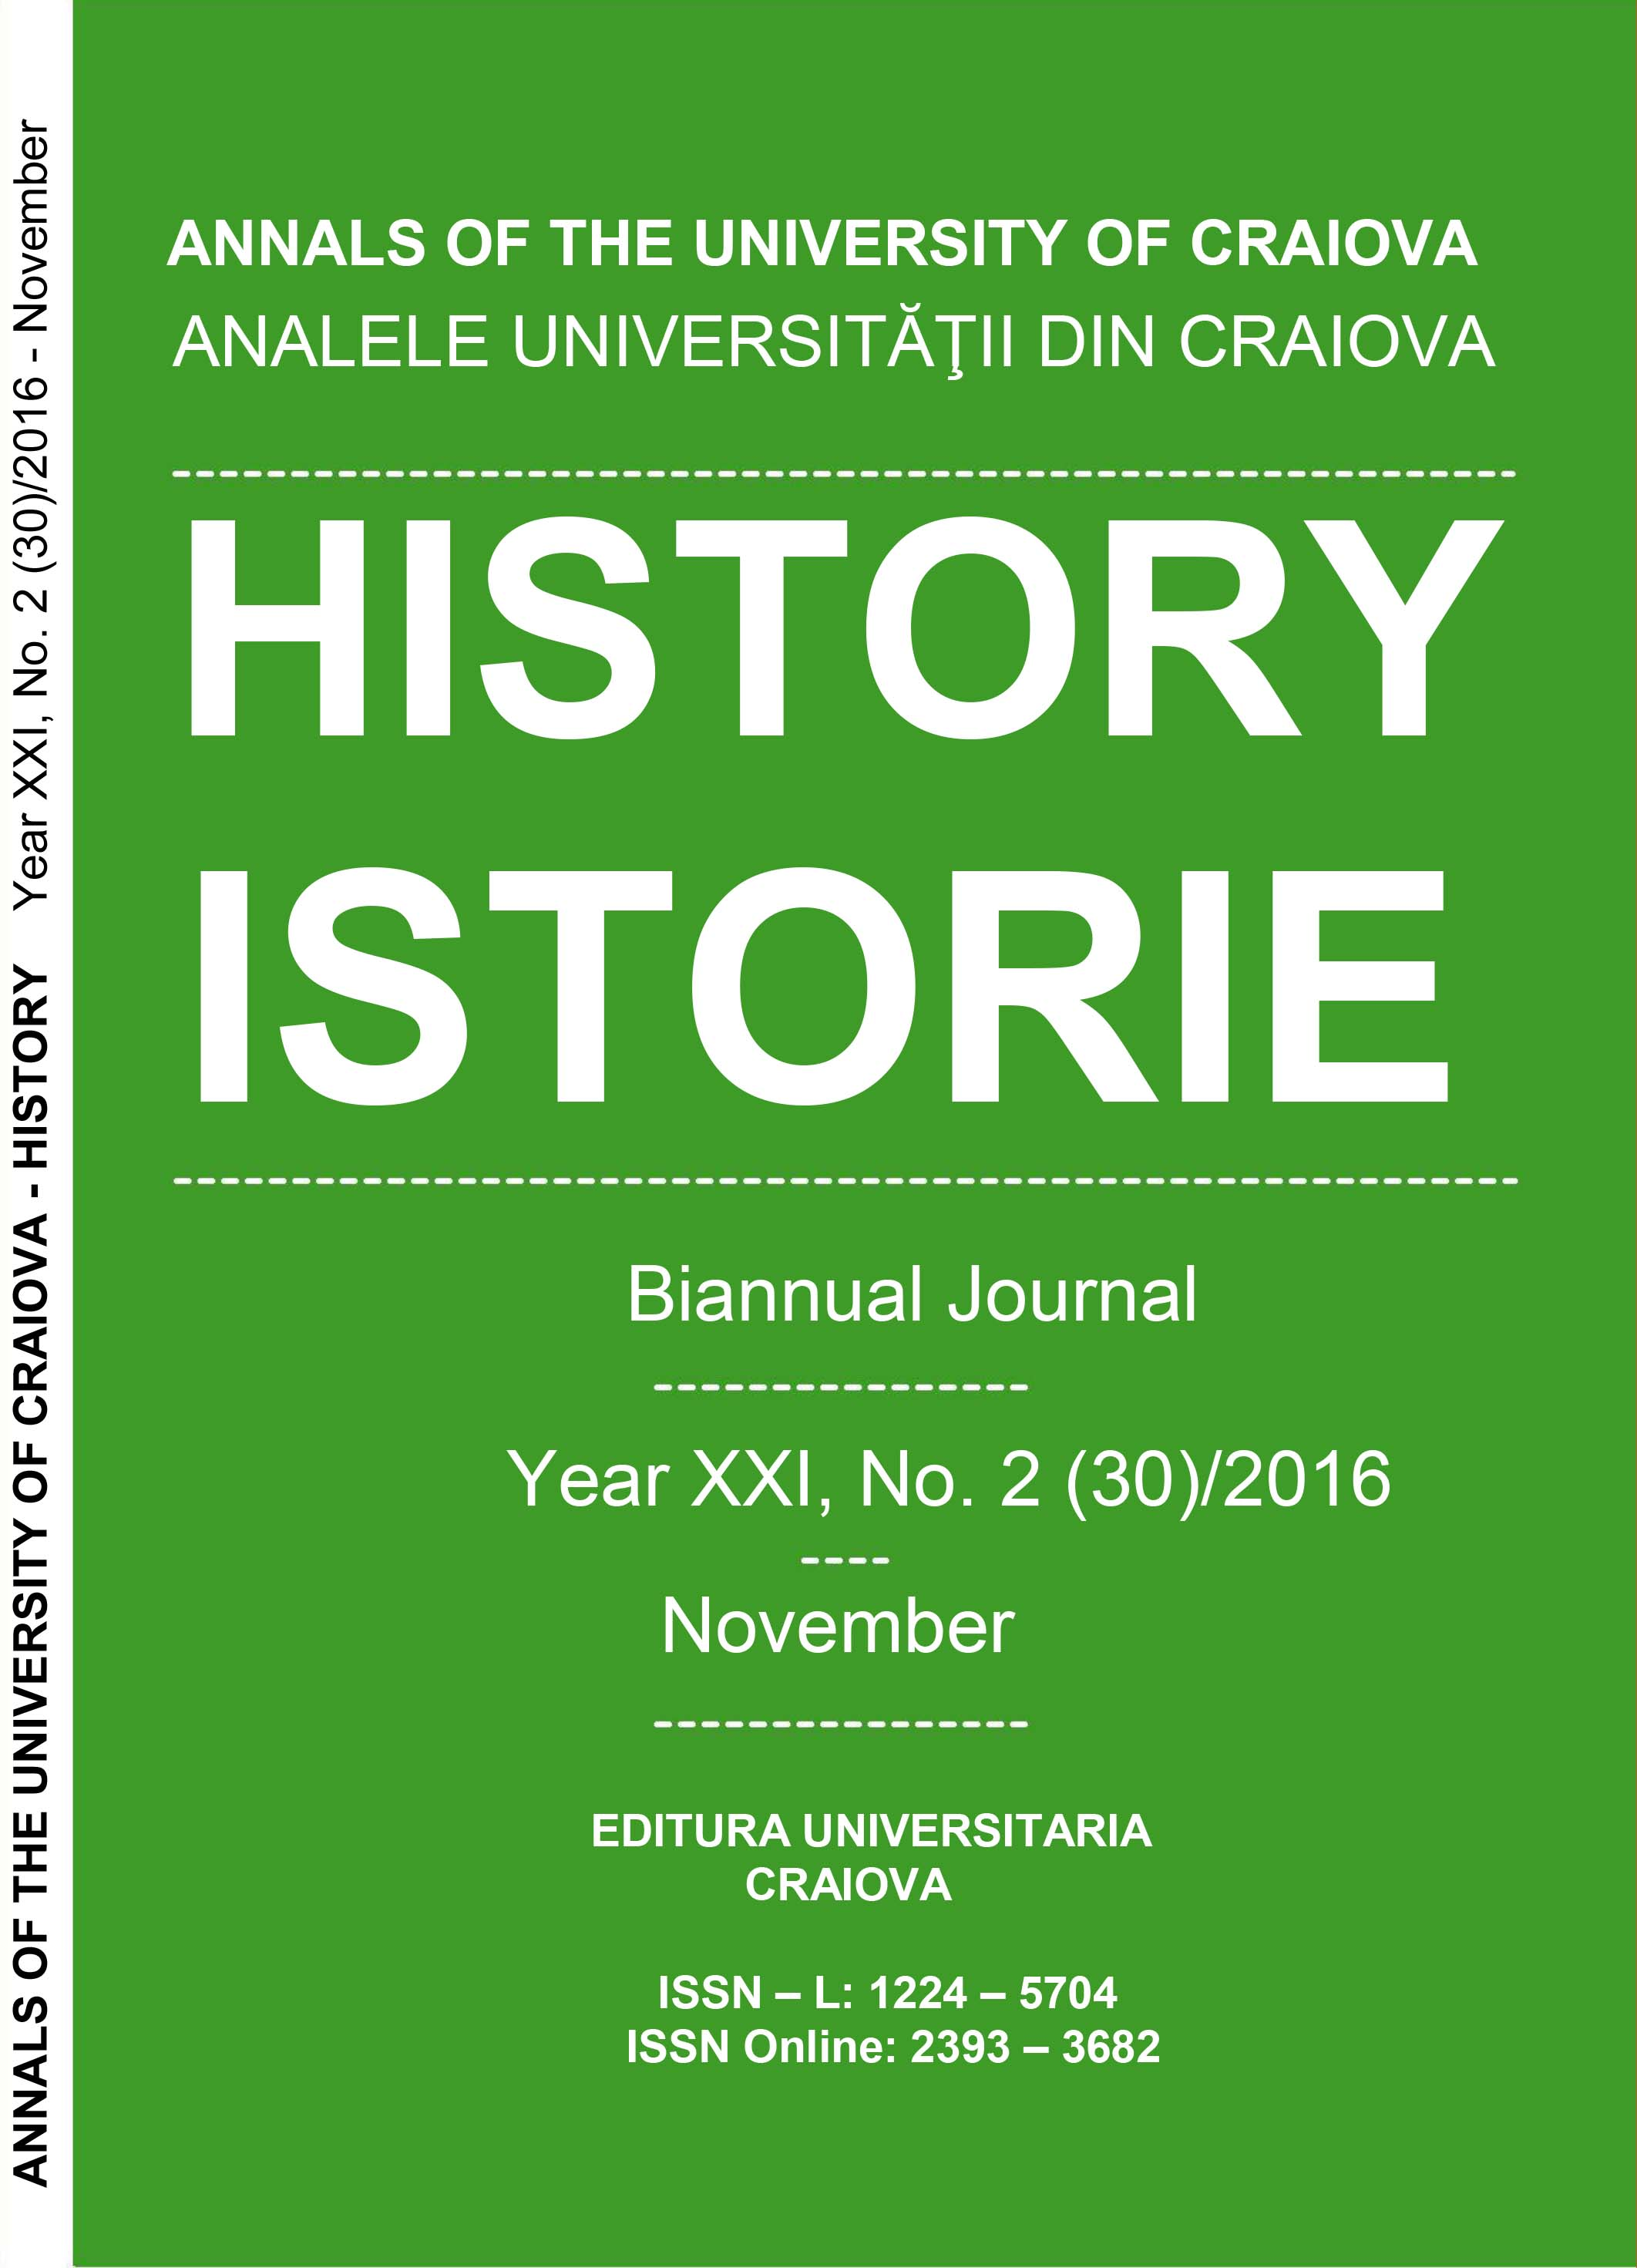 ANNALS OF THE UNIVERSITY OF CRAIOVA Year XXI, No. 2(30)/2016